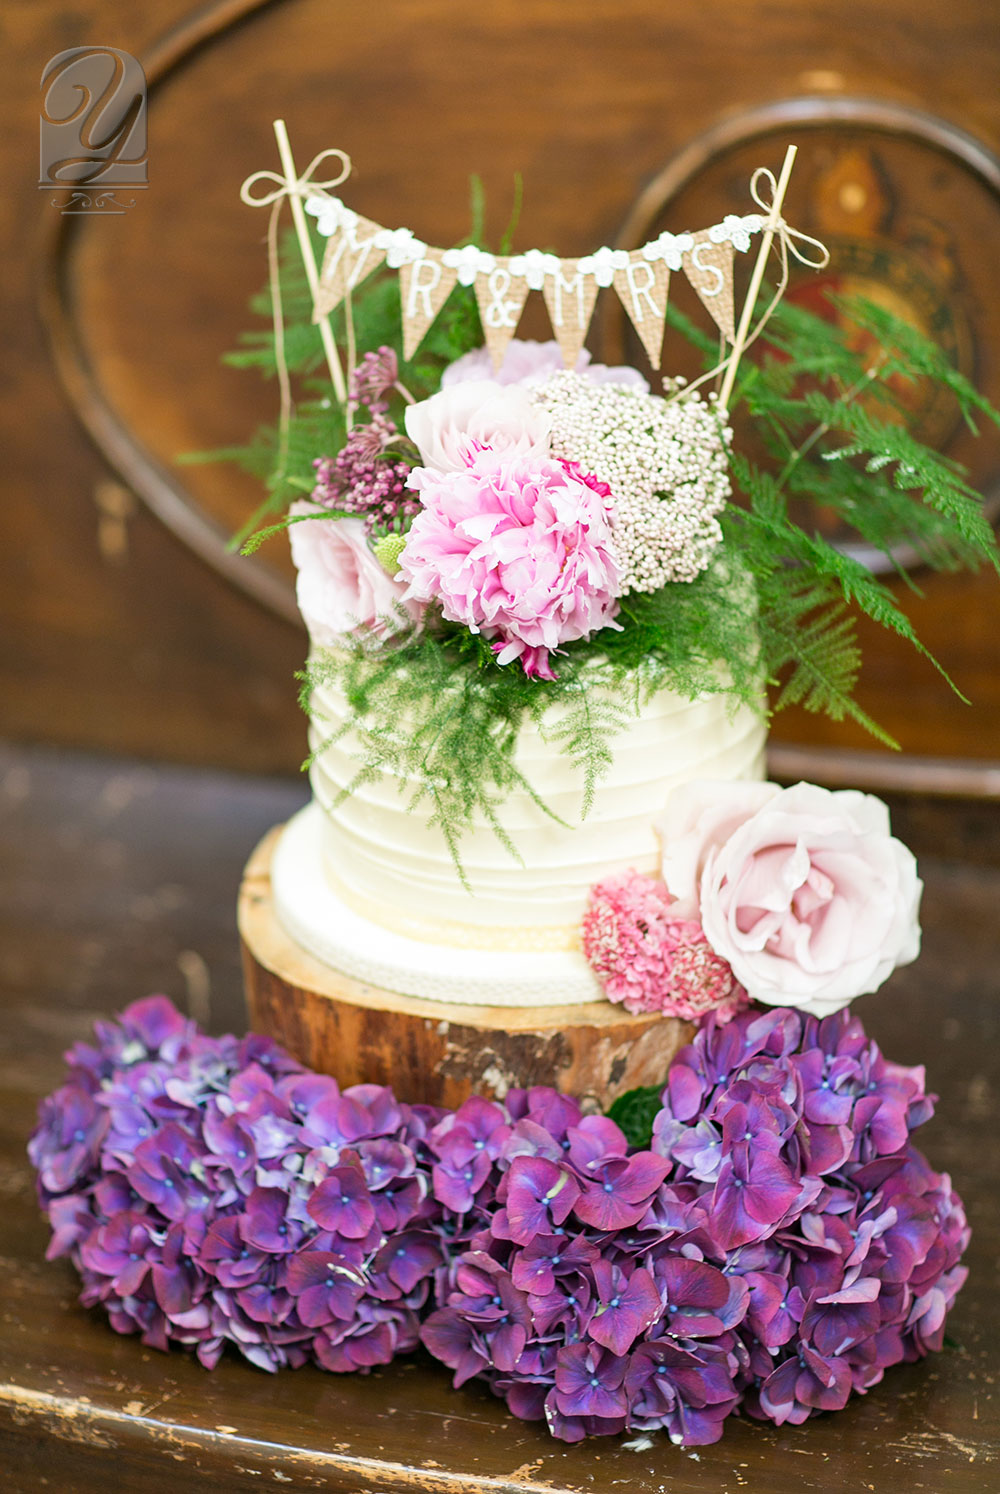 Created by Unique Cakes by Yevnig, this rustic buttercream finished round-tier cake is elegantly topped by a small fresh flower bouquet, co-ordinating with the brides' hand tie. Natural tree trunk slices present a complementary selection of delicious cupcakes